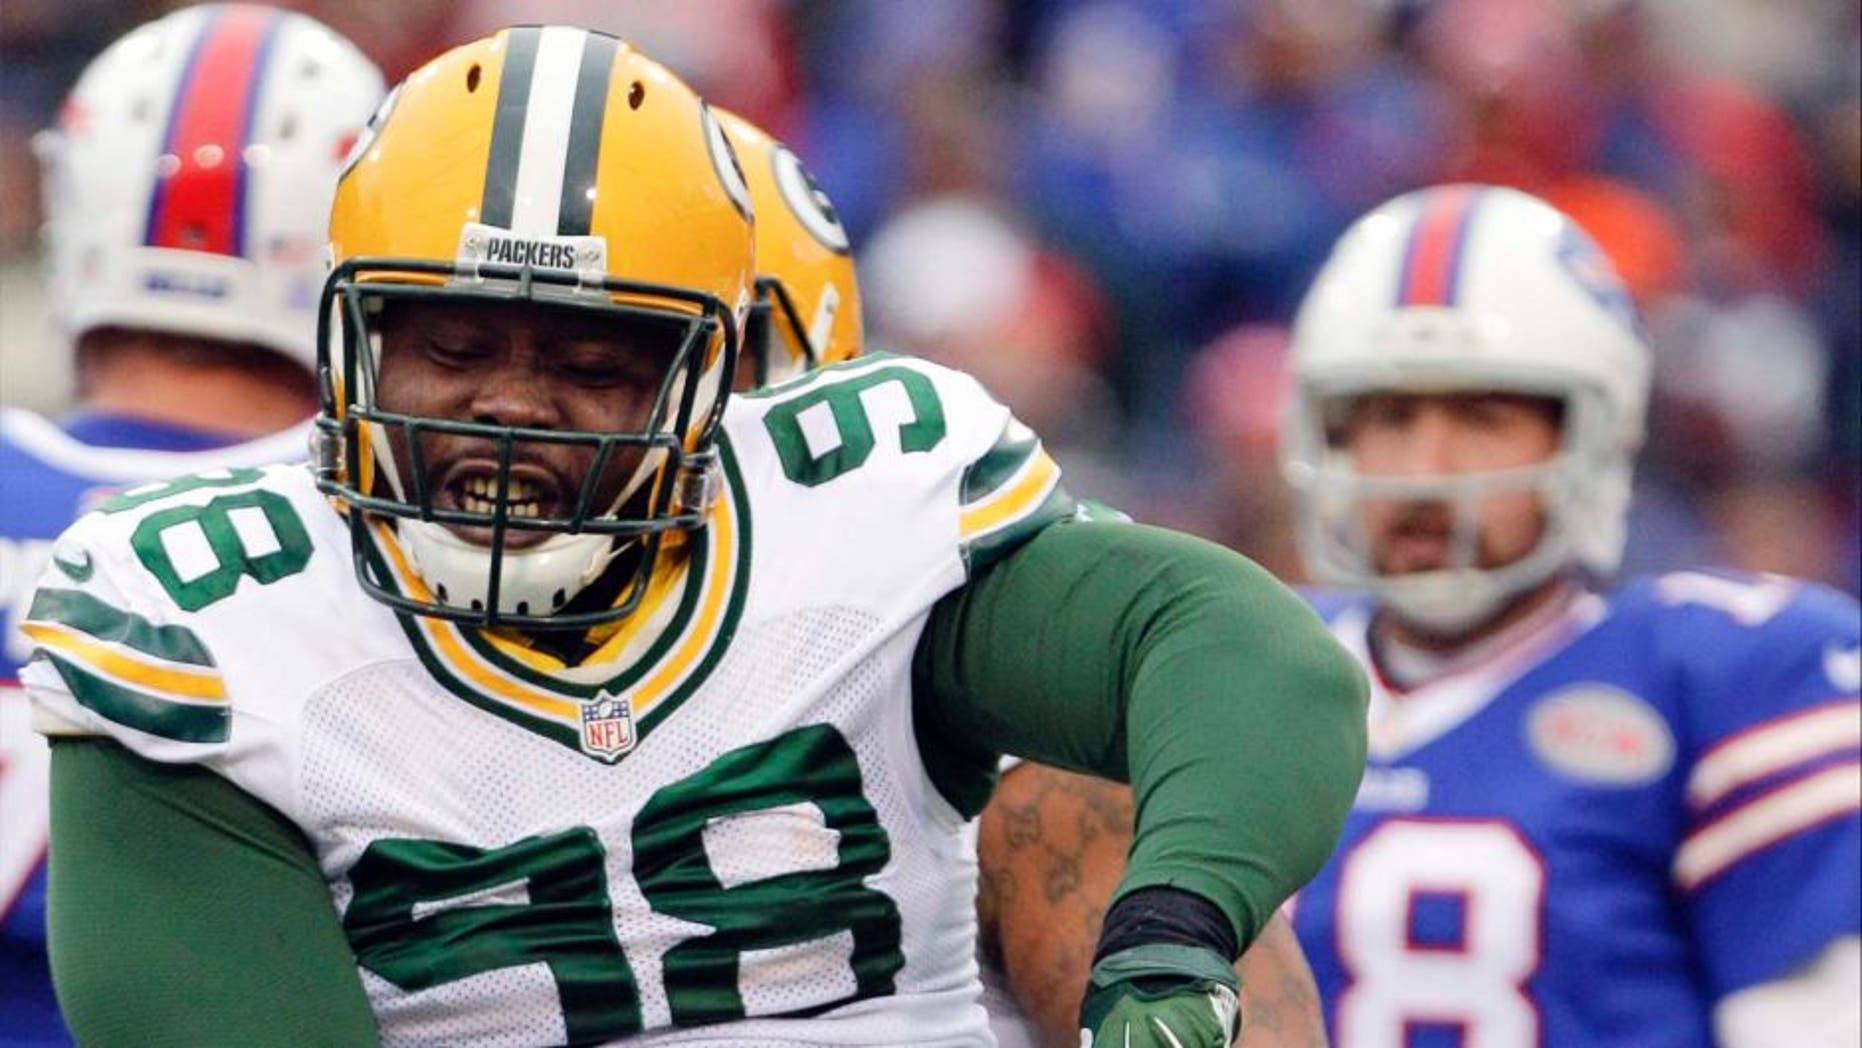 Green Bay Packers nose tackle Letroy Guion celebrates a sack of Buffalo Bills quarterback Kyle Orton (back) during the first half.